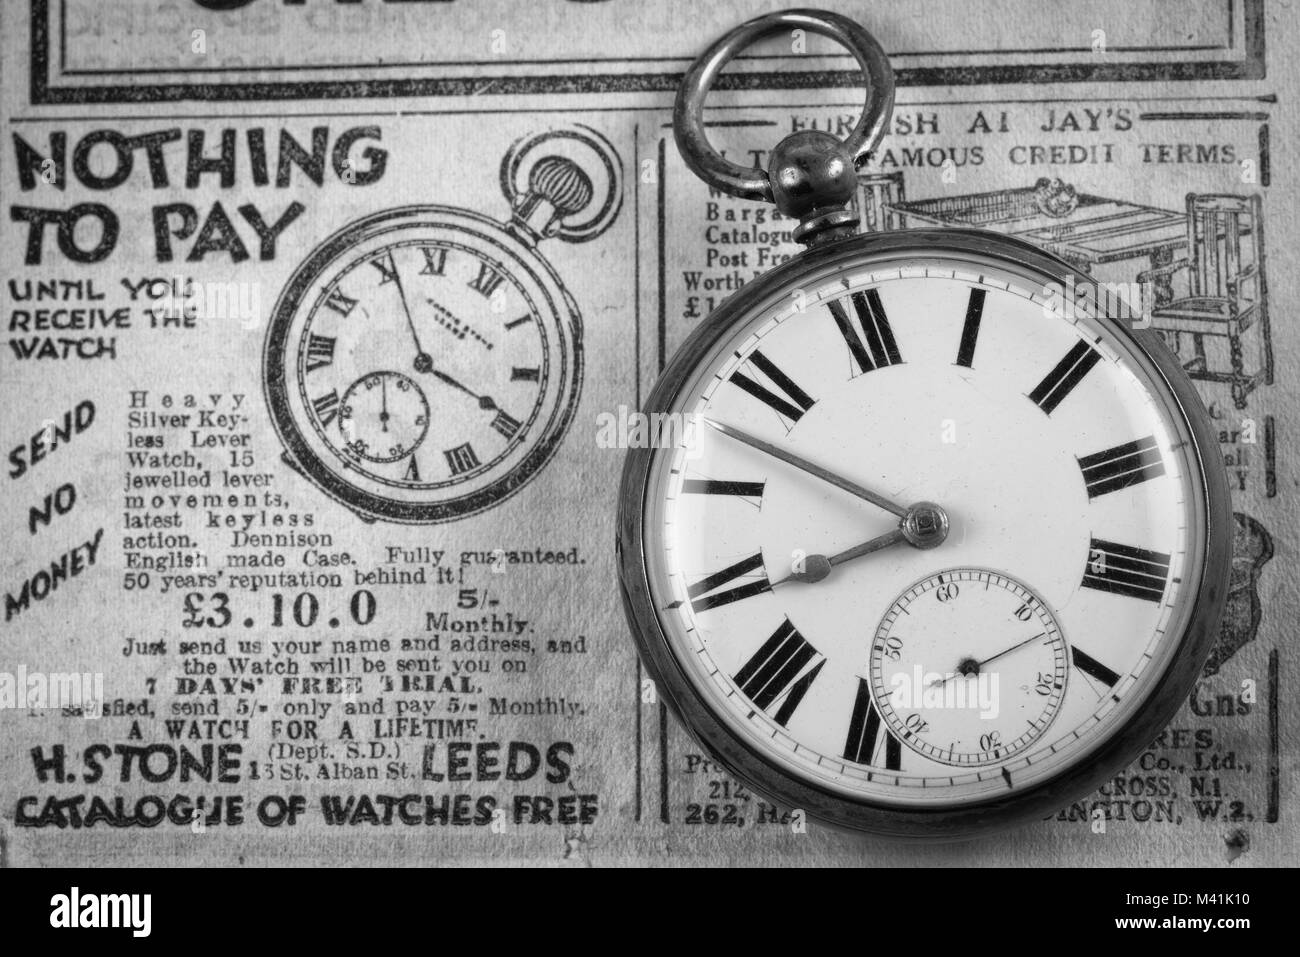 Vintage pocket watch in Black and White. - Stock Image